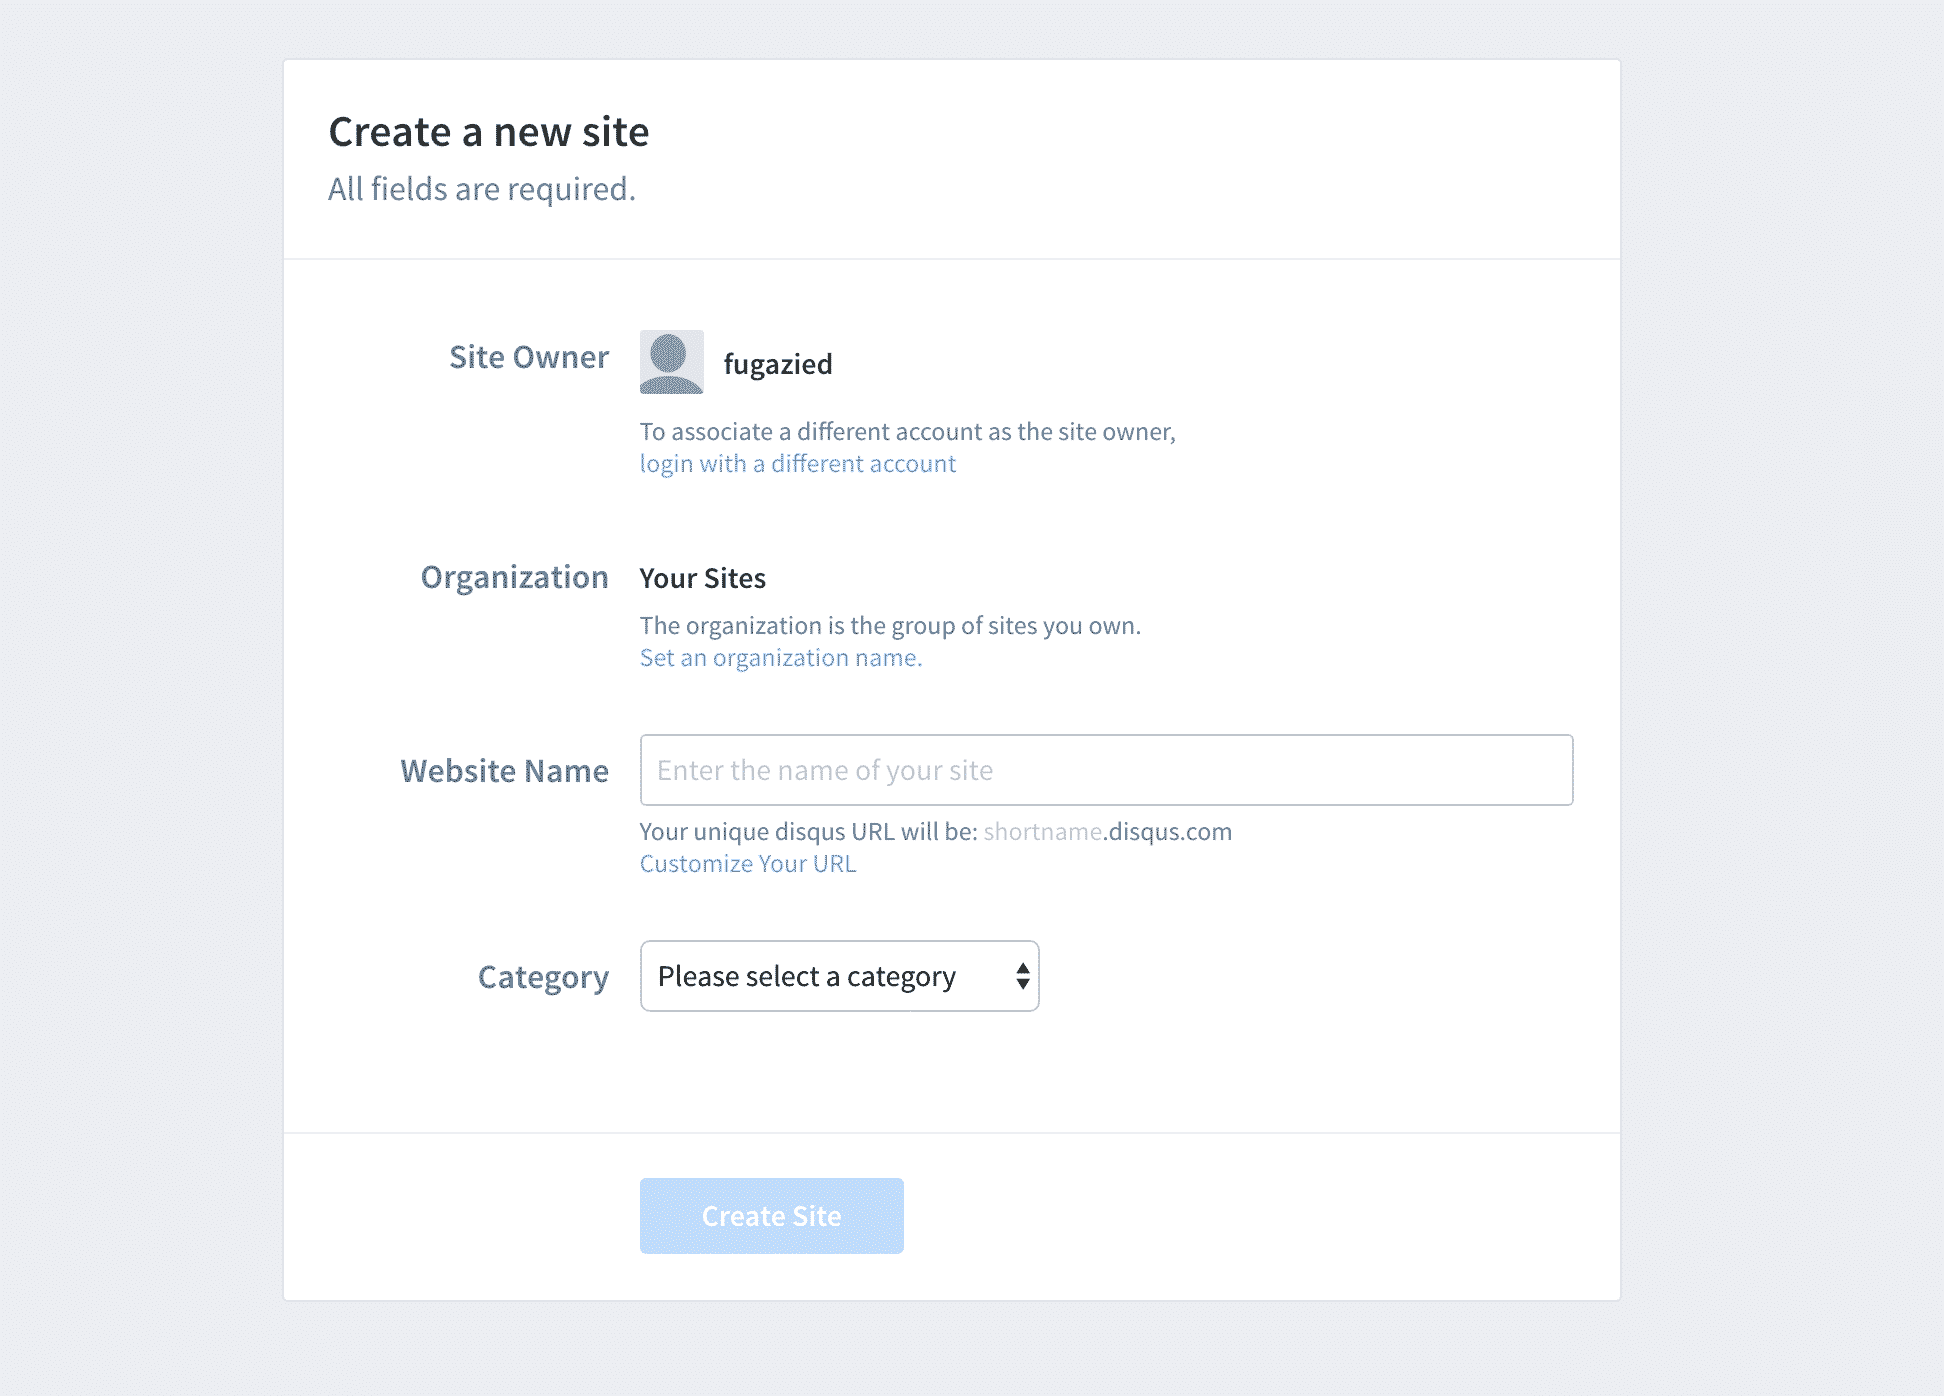 Creating a new site for Disqus